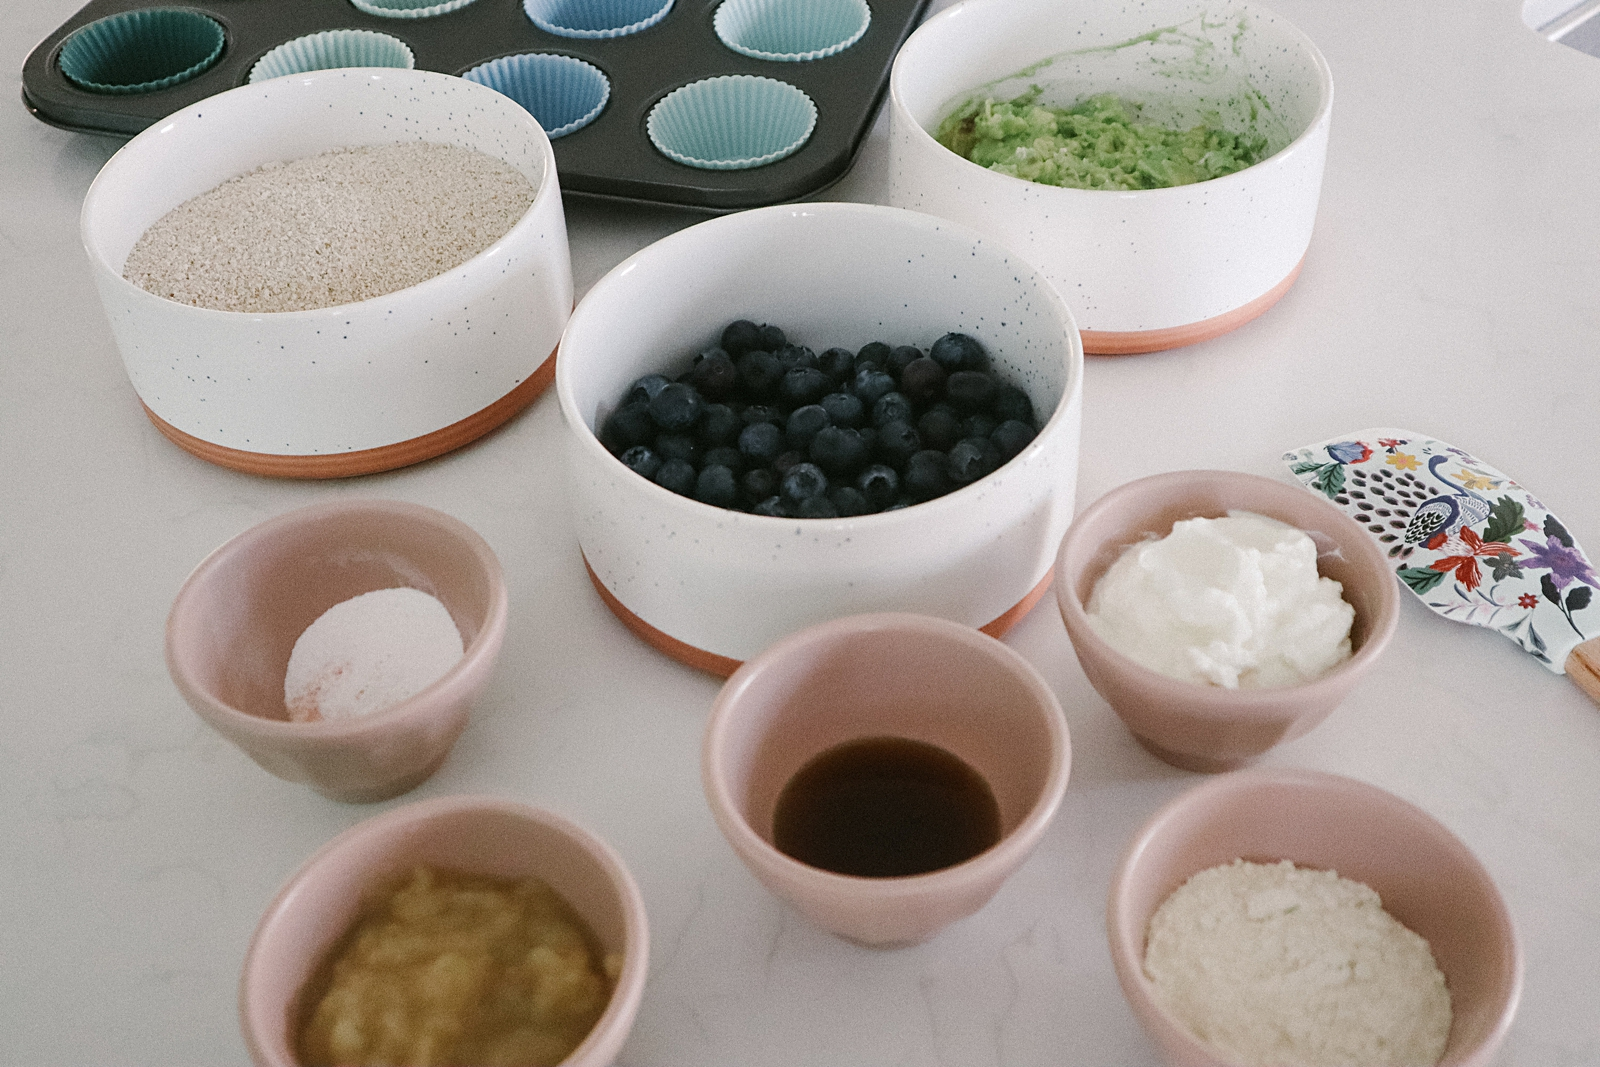 Avocado Blueberry Muffin ingredients